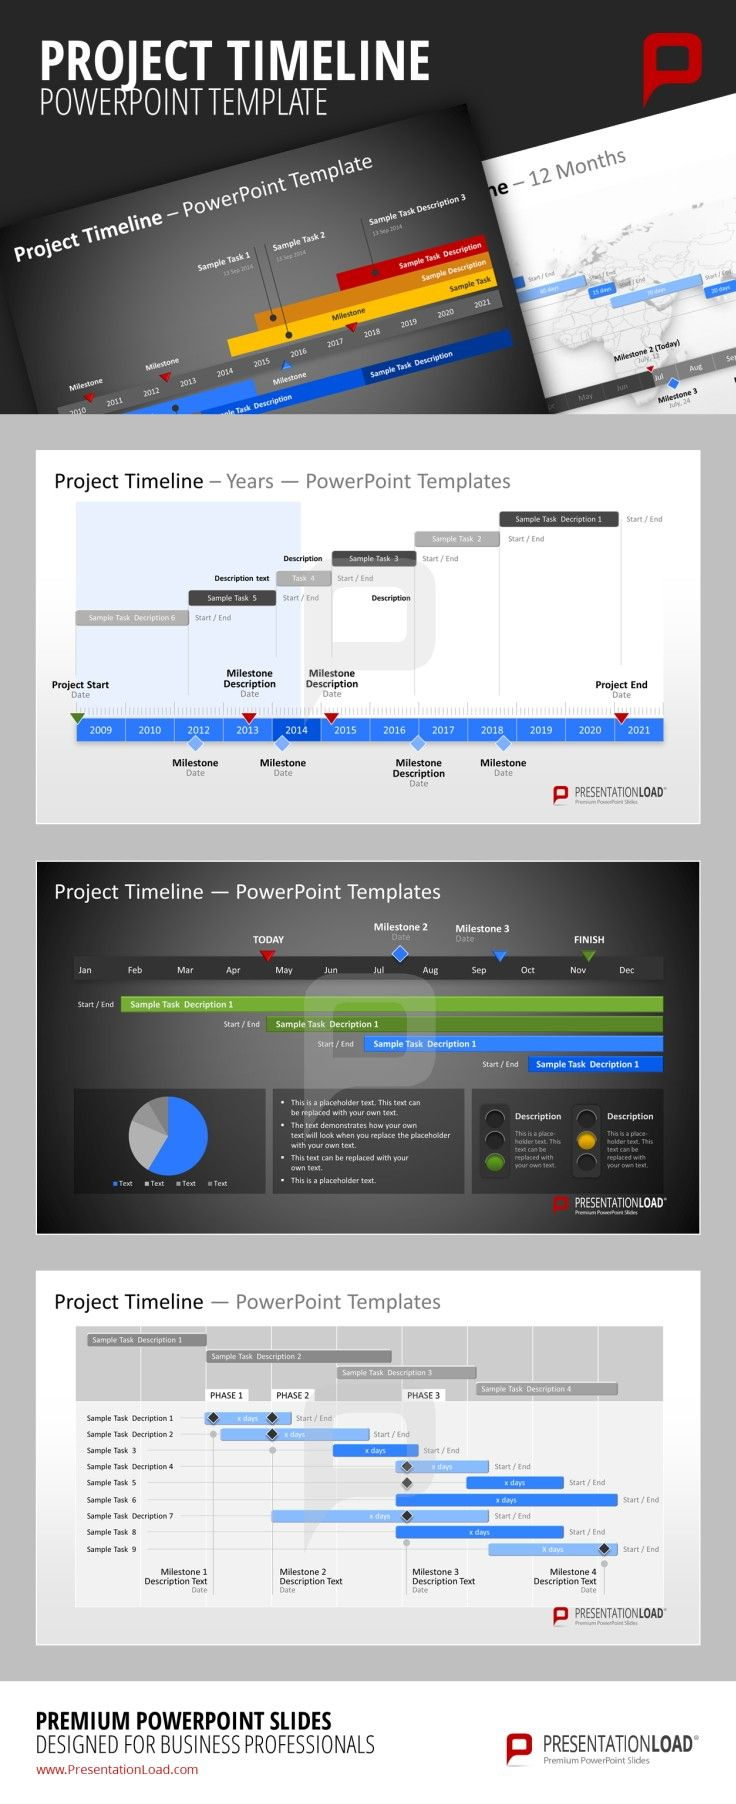 Project Timeline PPT Example Template Project Timeslines PowerPoint ...